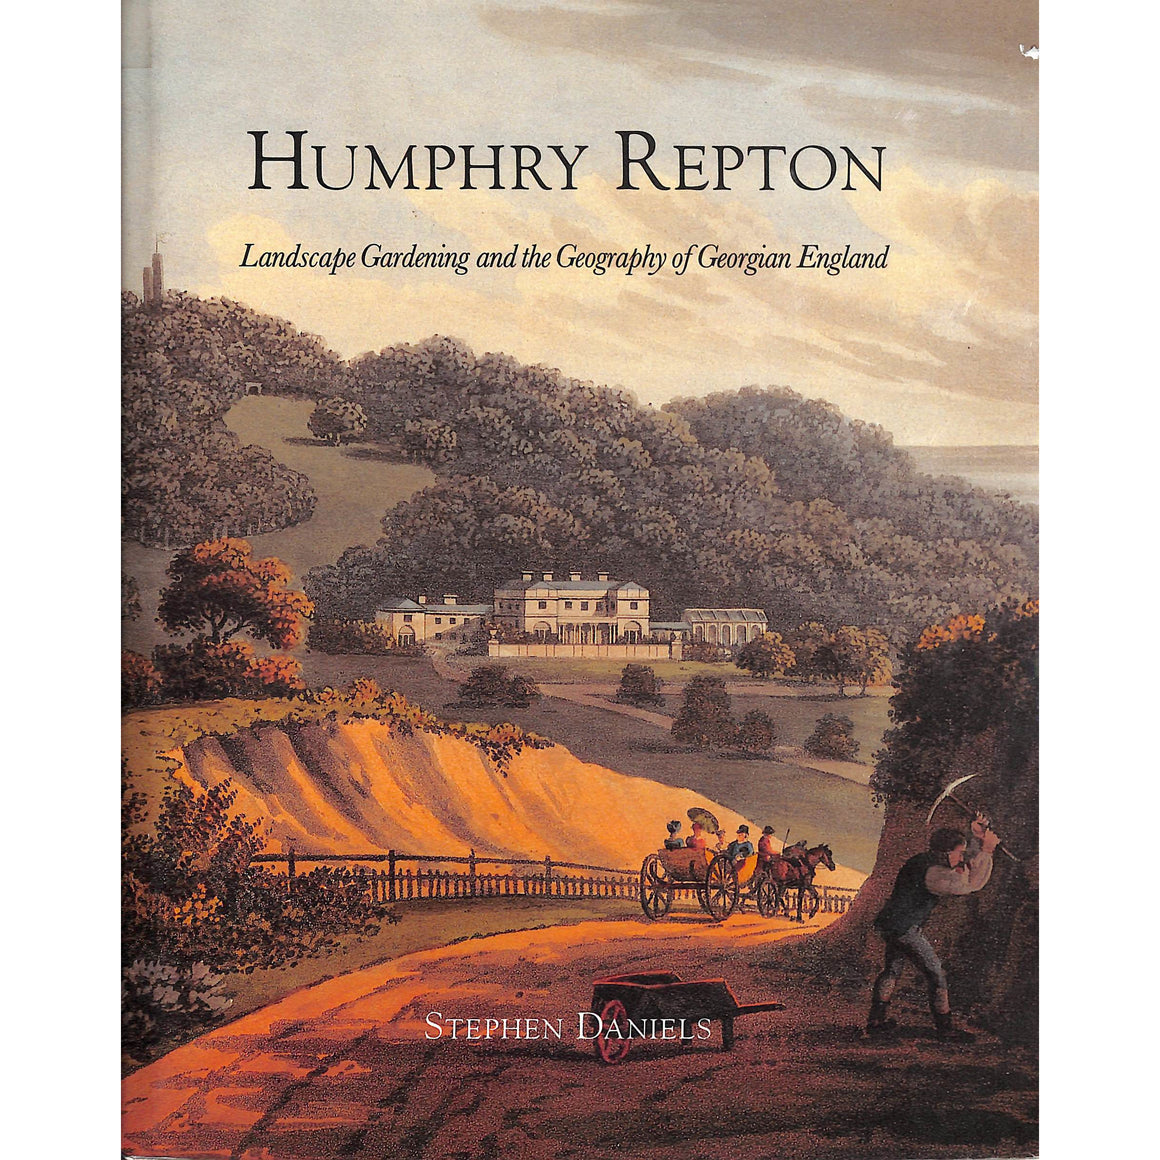 Humphry Repton: Landsape Gardening And The Geography Of Georgian England